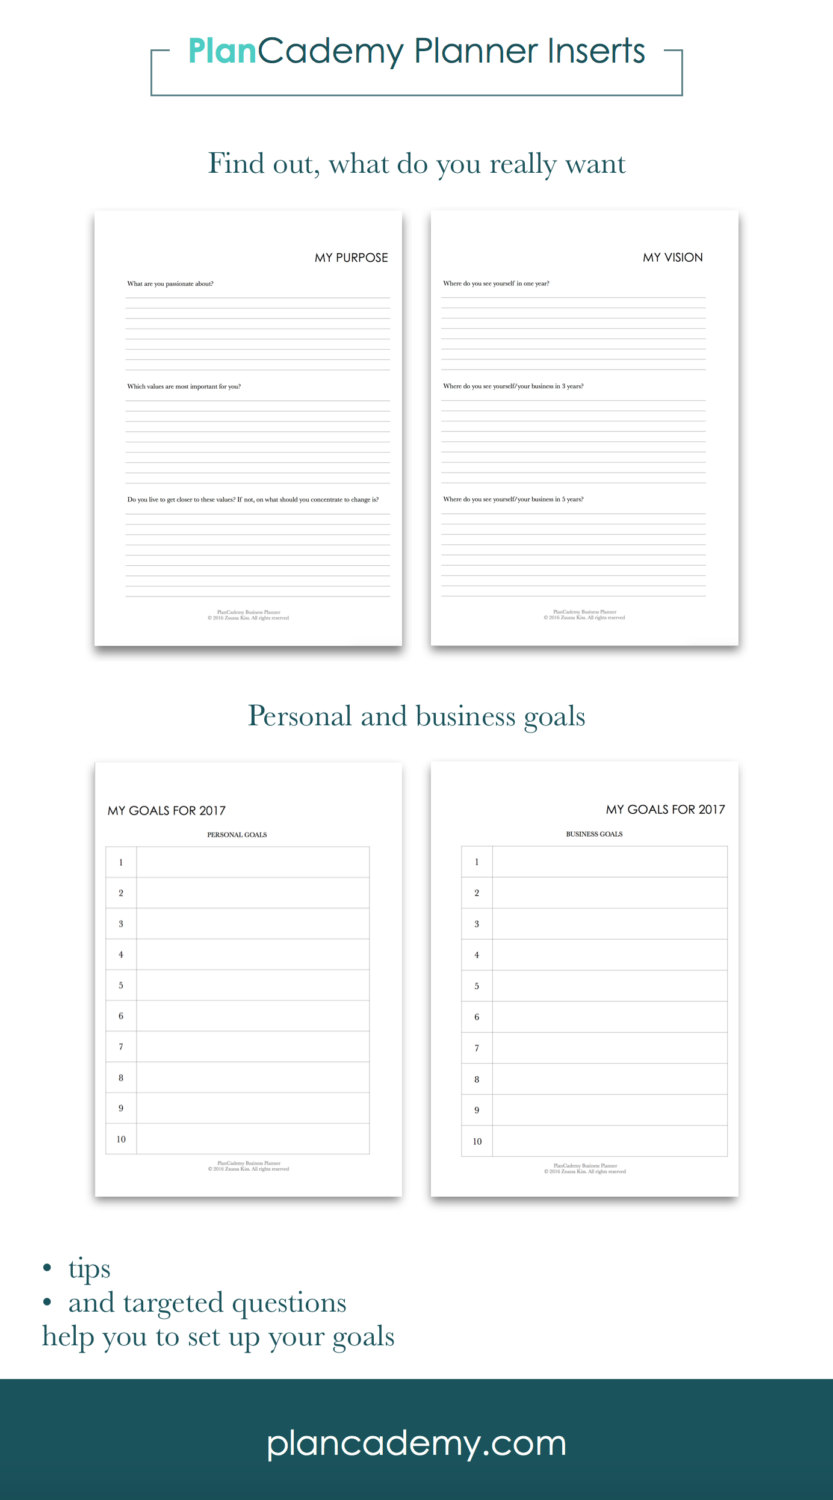 graphic regarding Discbound Planner Printables called 2017 Objective PLANNER printable Filofax include discbound A4, comprehensive sizing, A5, 50 percent measurement office environment planner PlanCademy